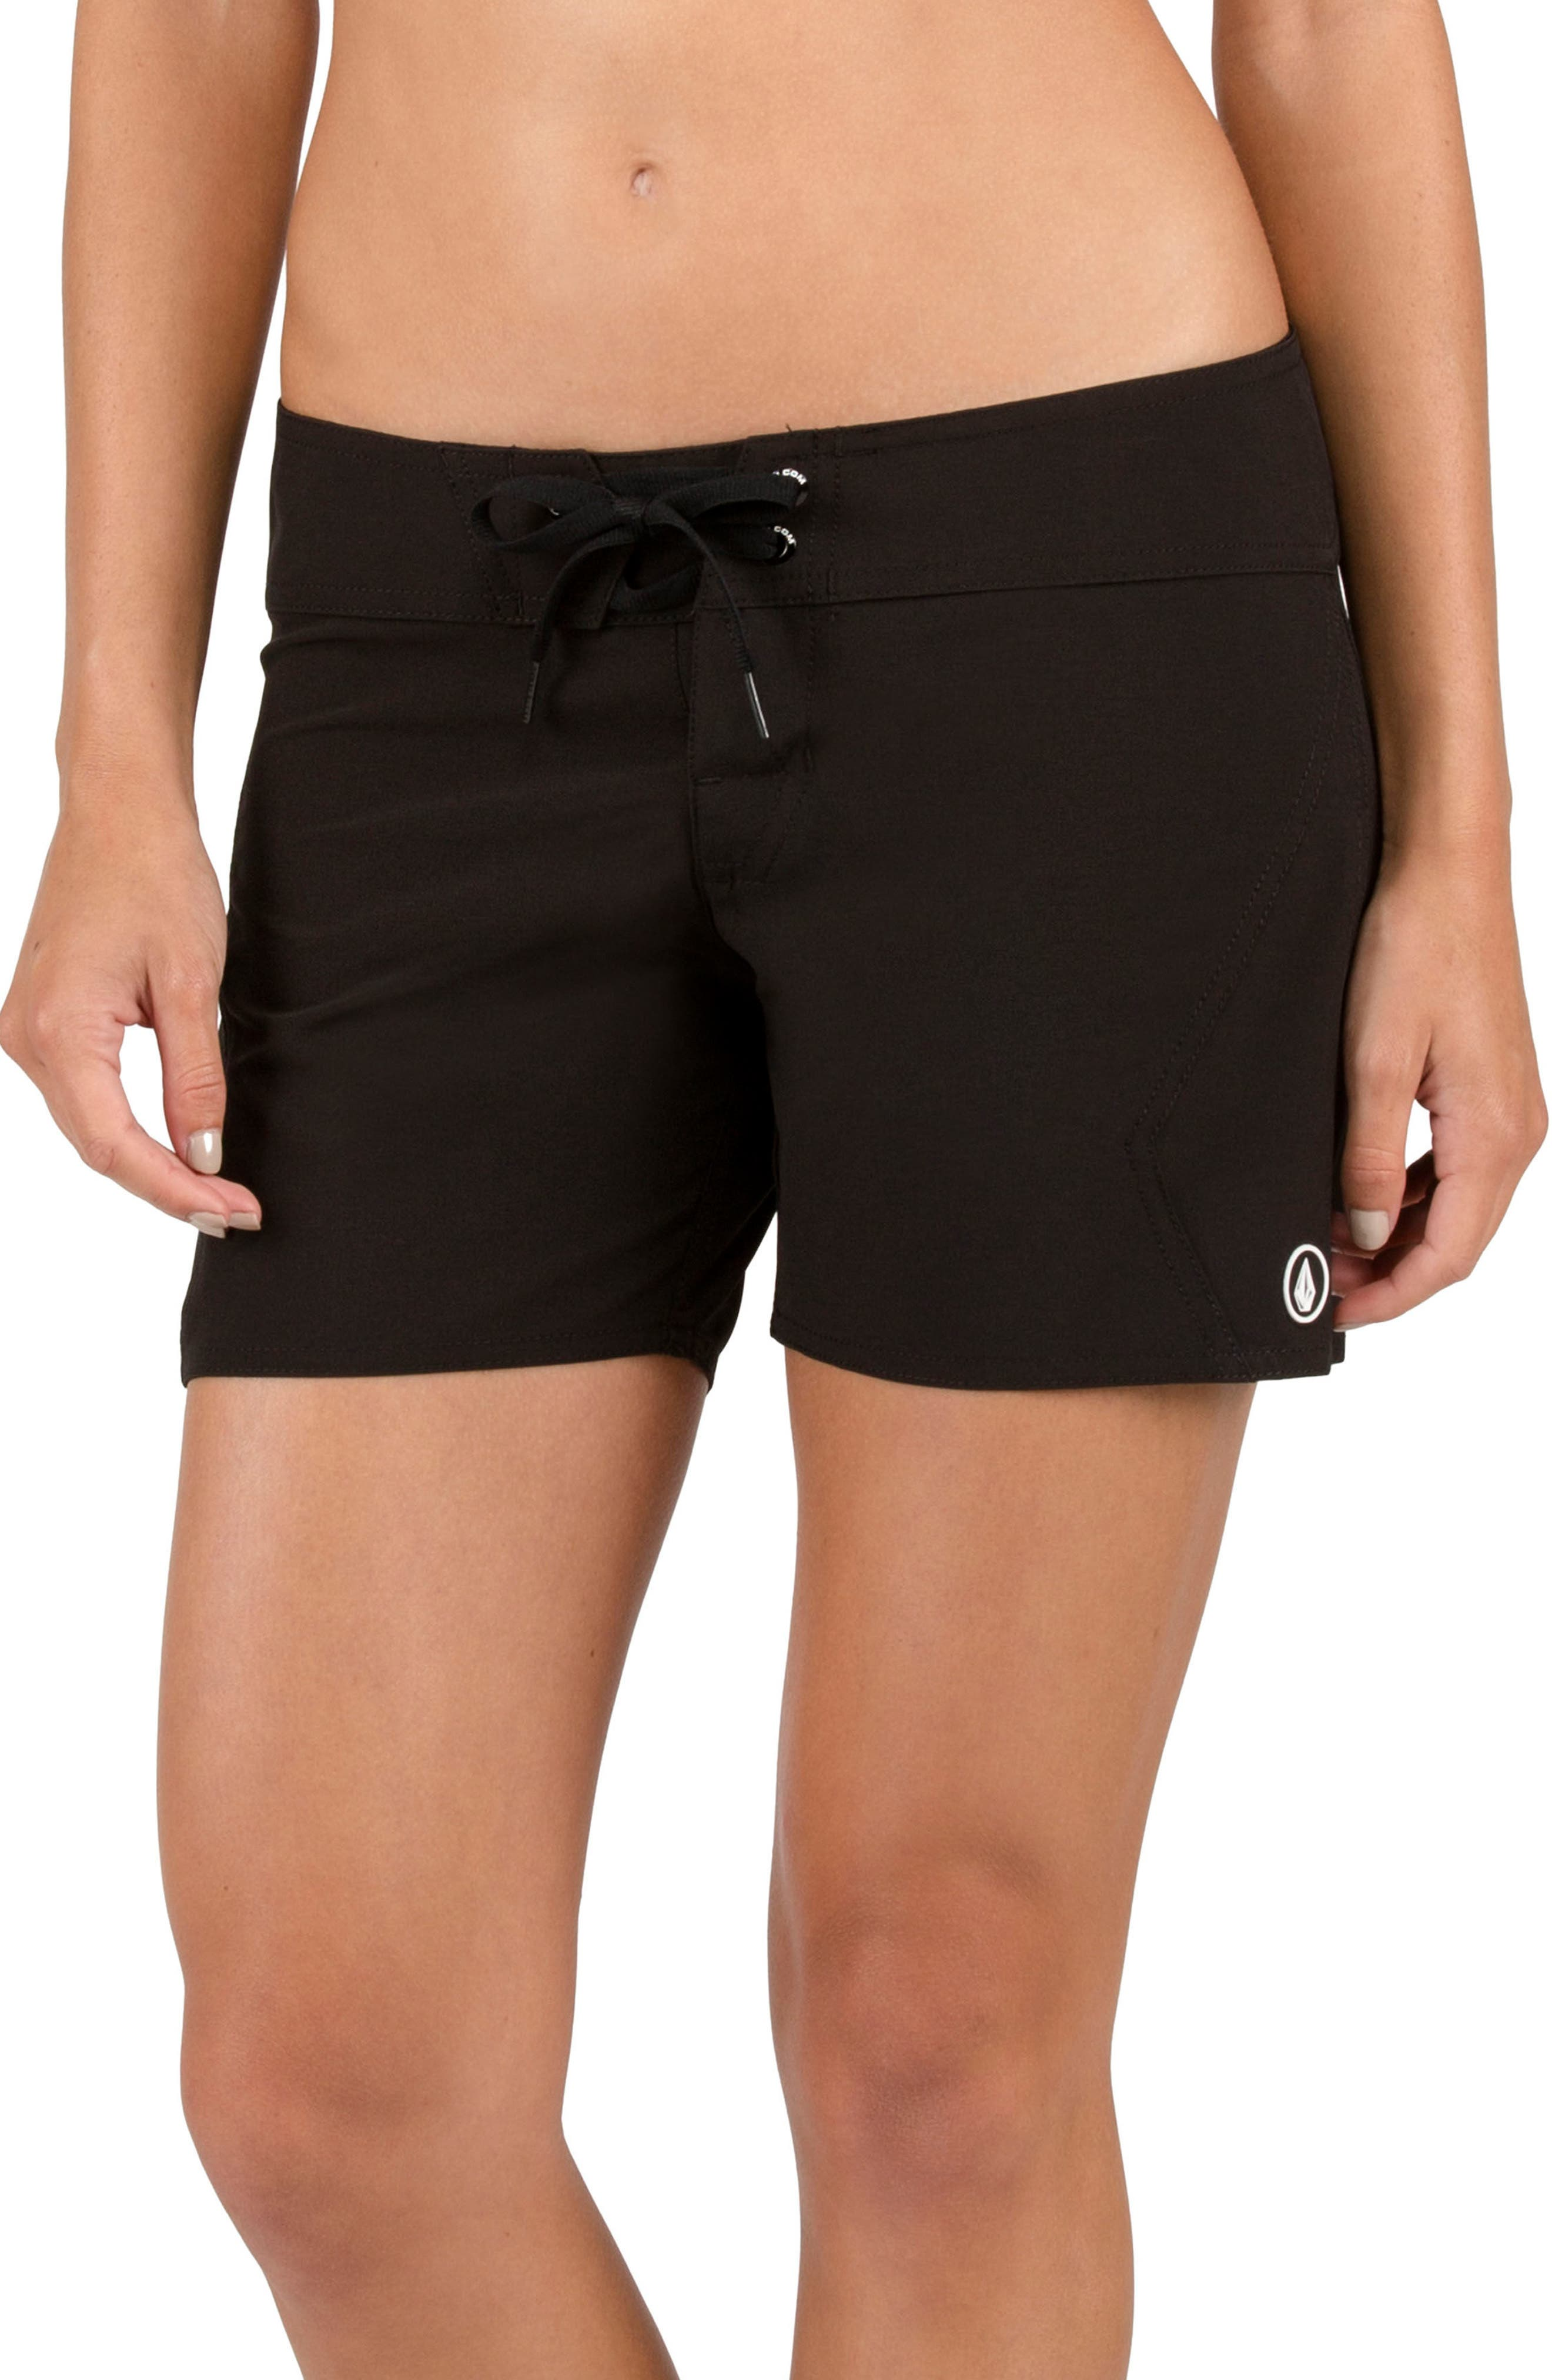 Simply Solid 5-Inch Board Shorts,                         Main,                         color,